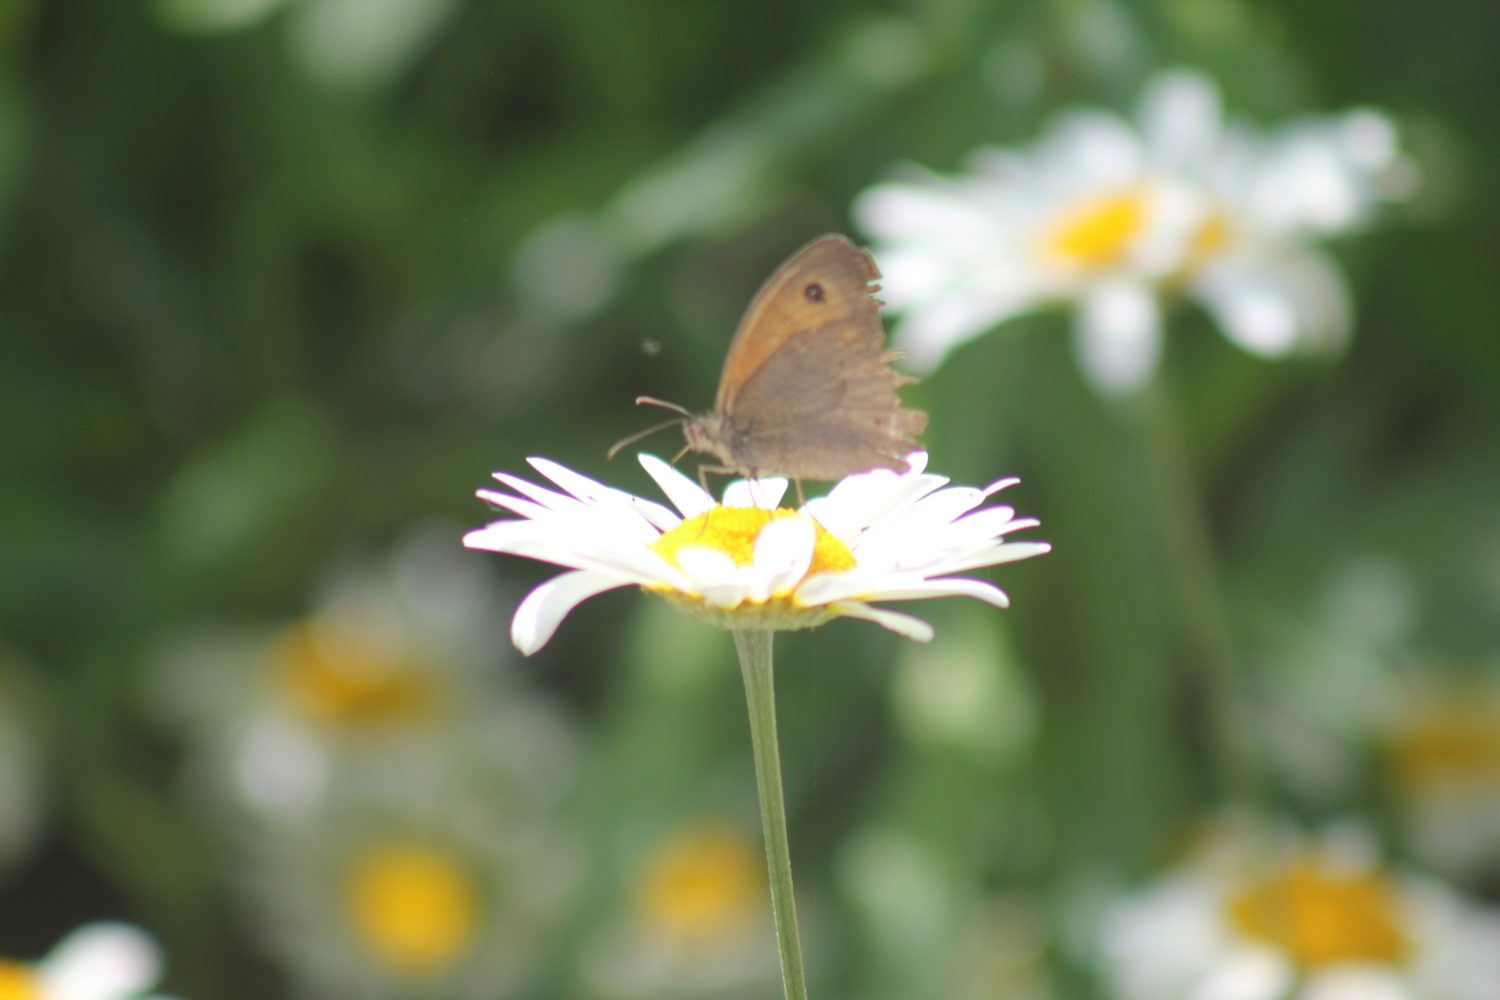 Flowers in the daisy family make great 'landing pads' for insects